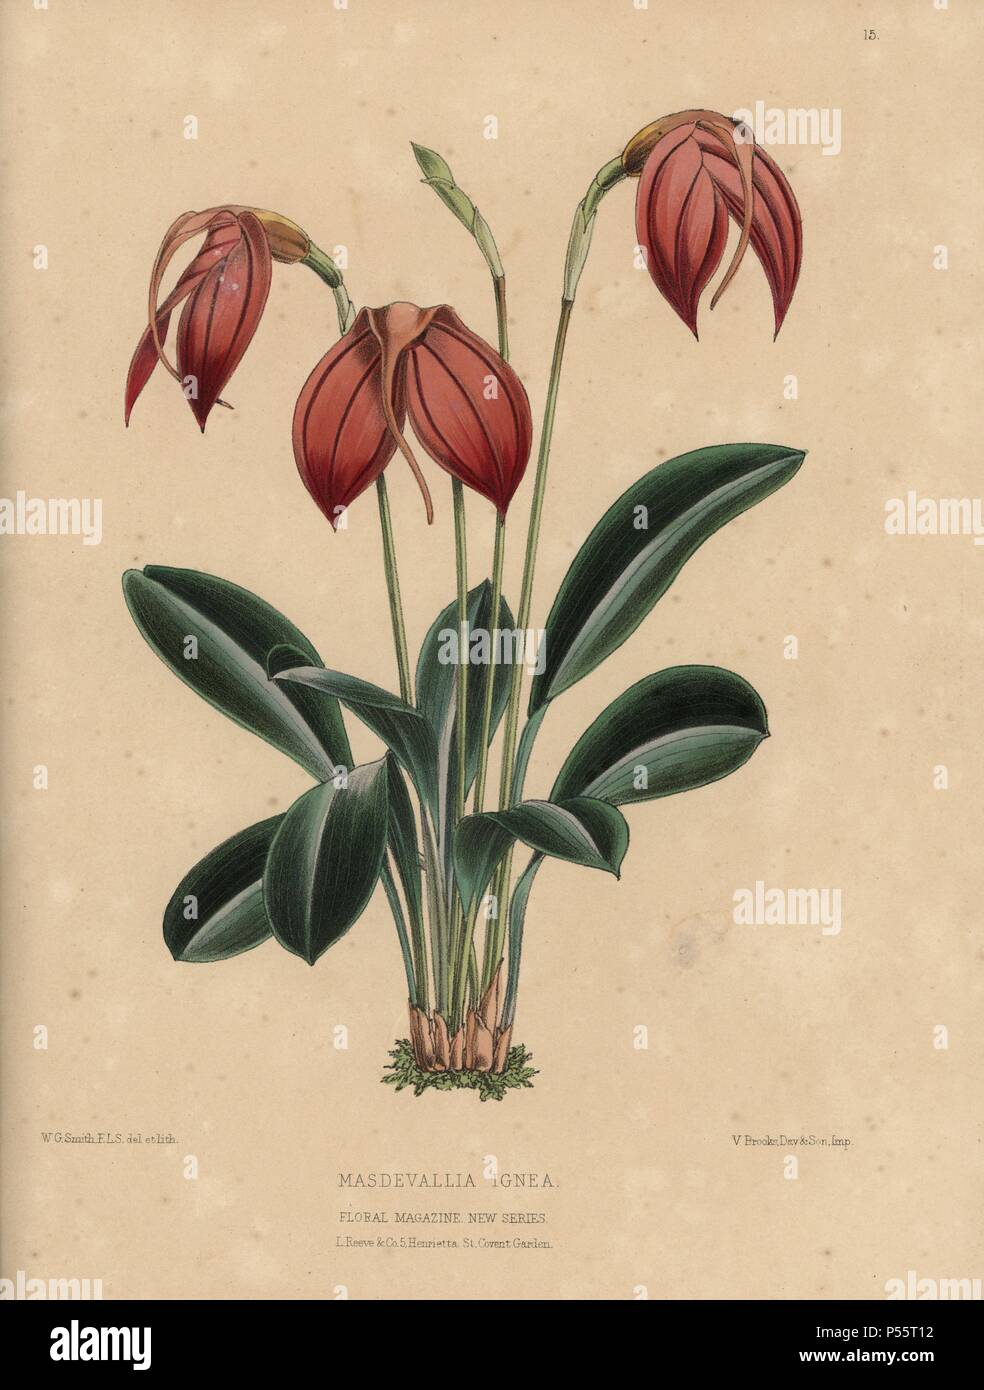 Masdevallia ignea orchid with orange flowers. Handcolored botanical drawn and lithographed by W.G. Smith from H.H. Dombrain's 'Floral Magazine' 1872.. Worthington G. Smith (1835-1917), architect, engraver and mycologist. Smith also illustrated 'The Gardener's Chronicle.' Henry Honywood Dombrain (1818-1905), clergyman gardener, was editor of the 'Floral Magazine' from 1862 to 1873. - Stock Image